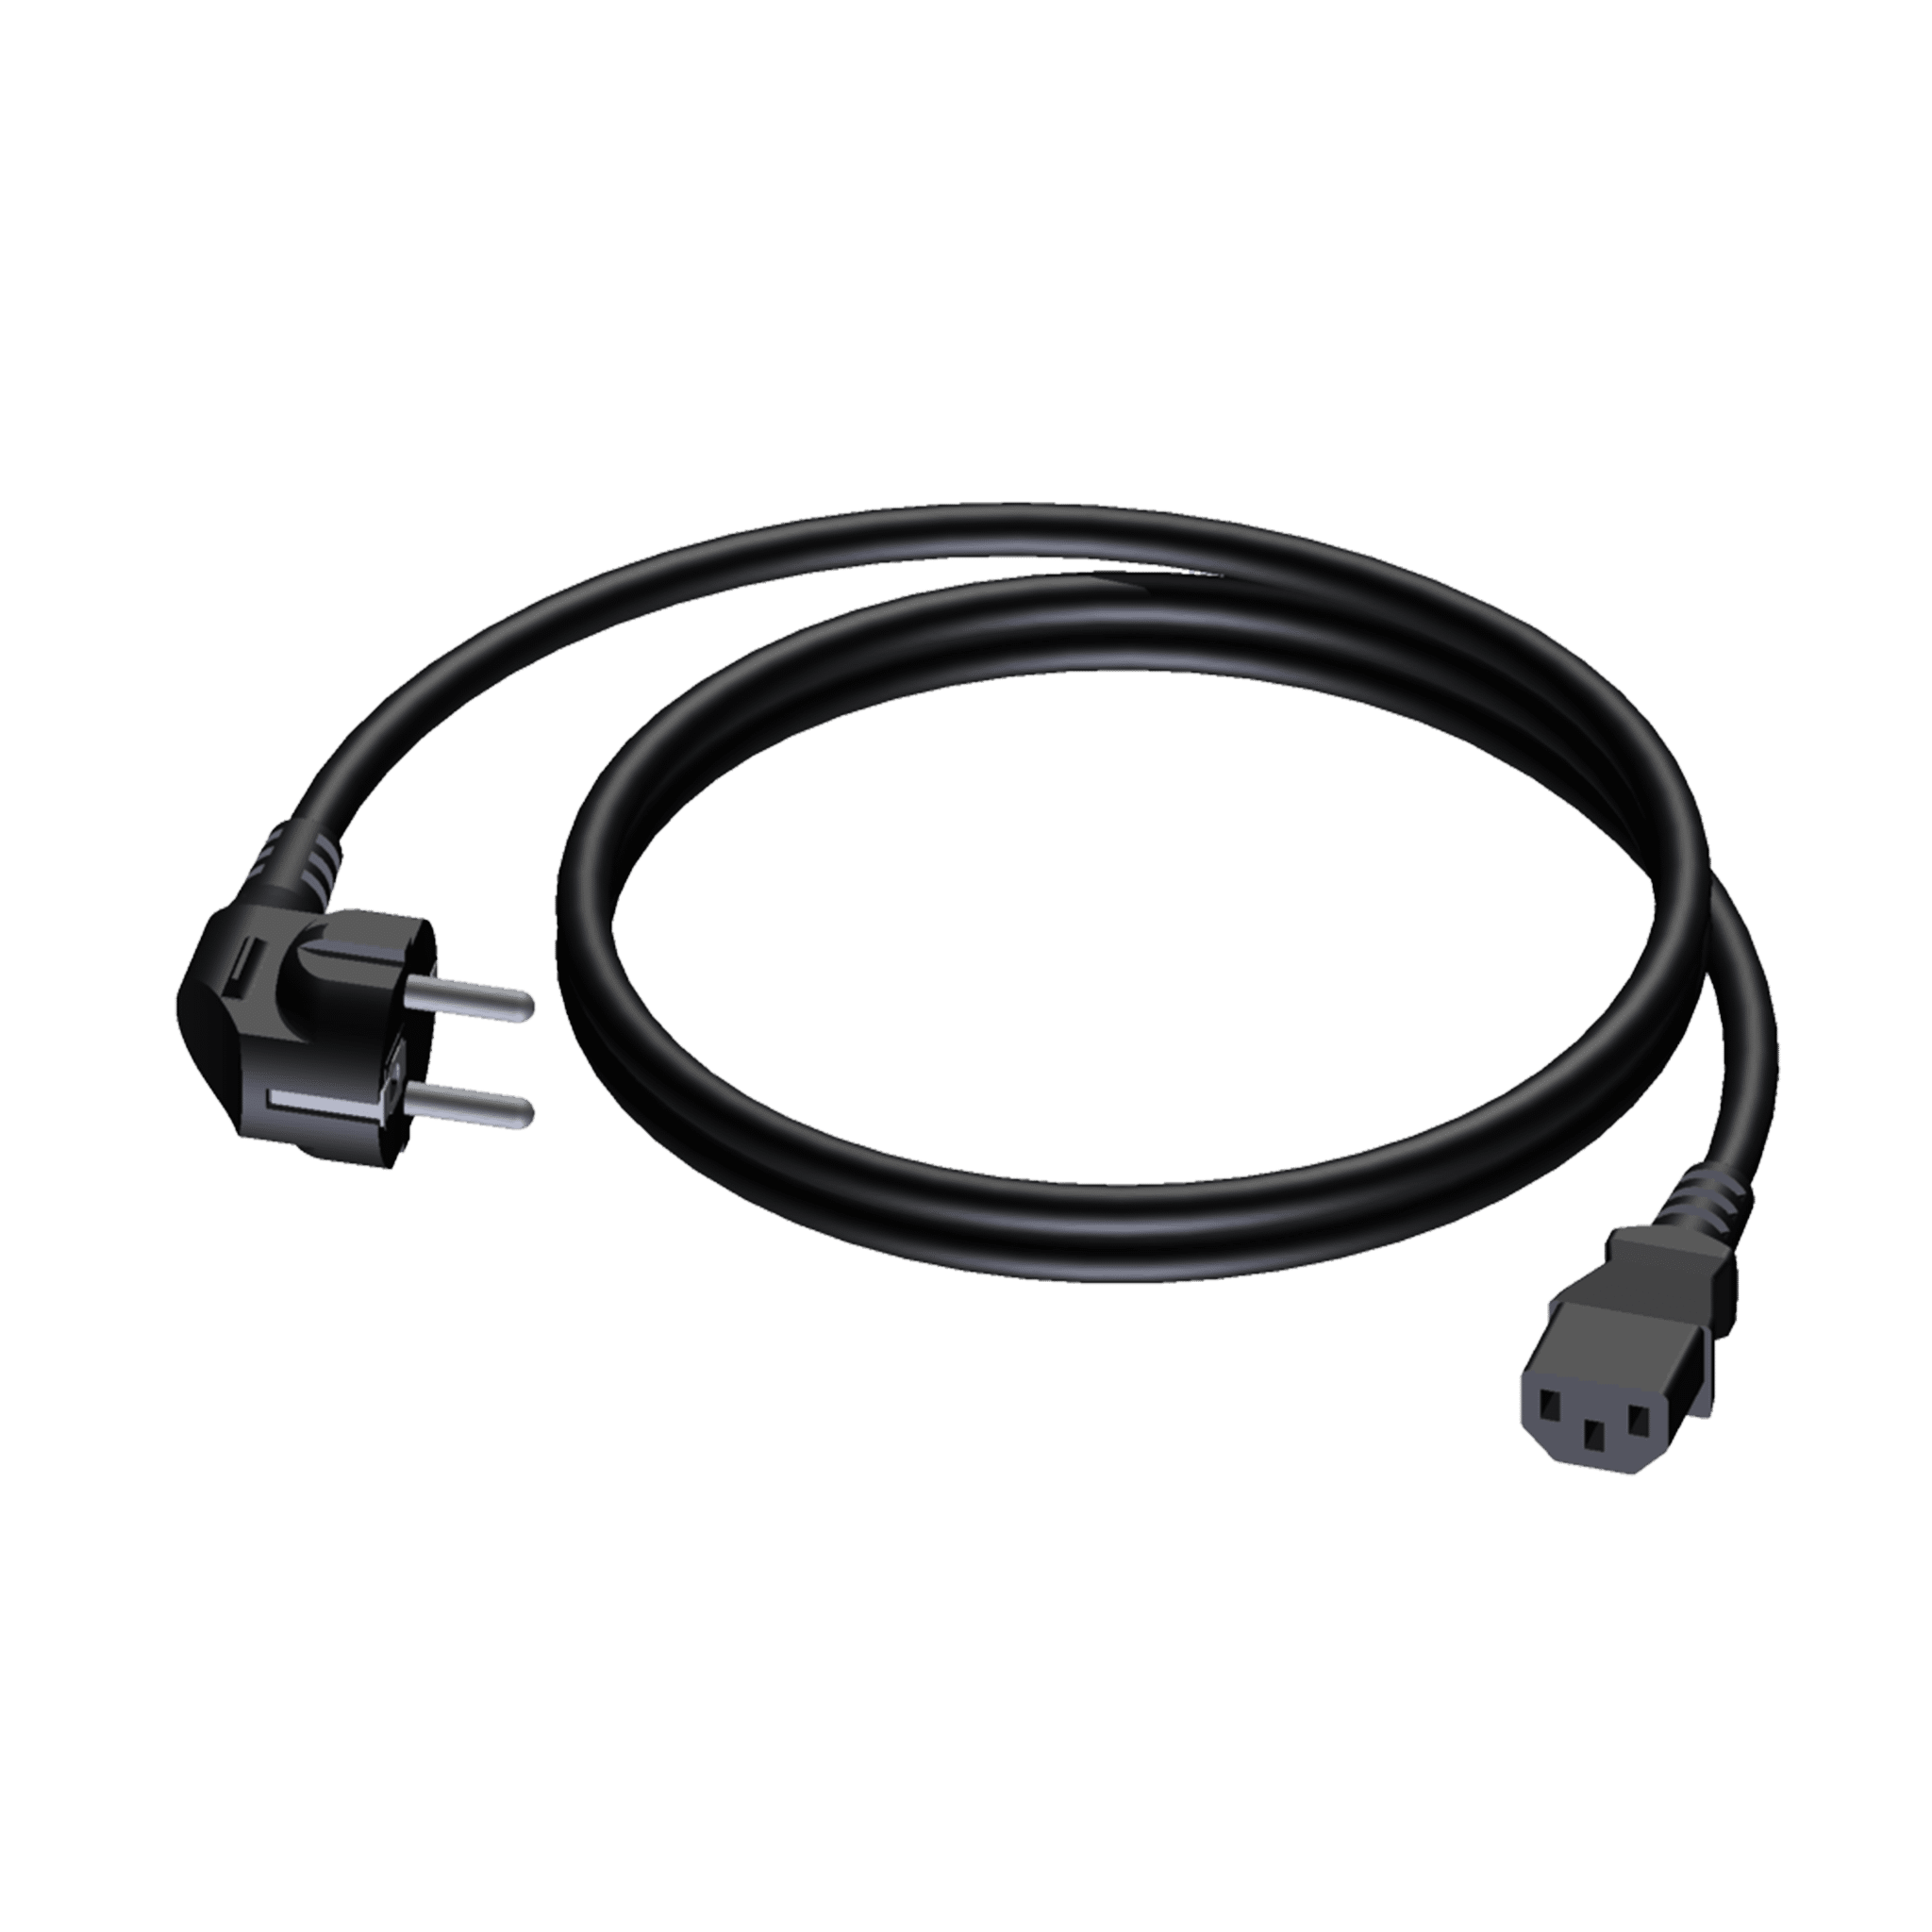 CAB490 - Power cable - schuko male - euro power female - PVC lead - 3 x 1.5 mm²